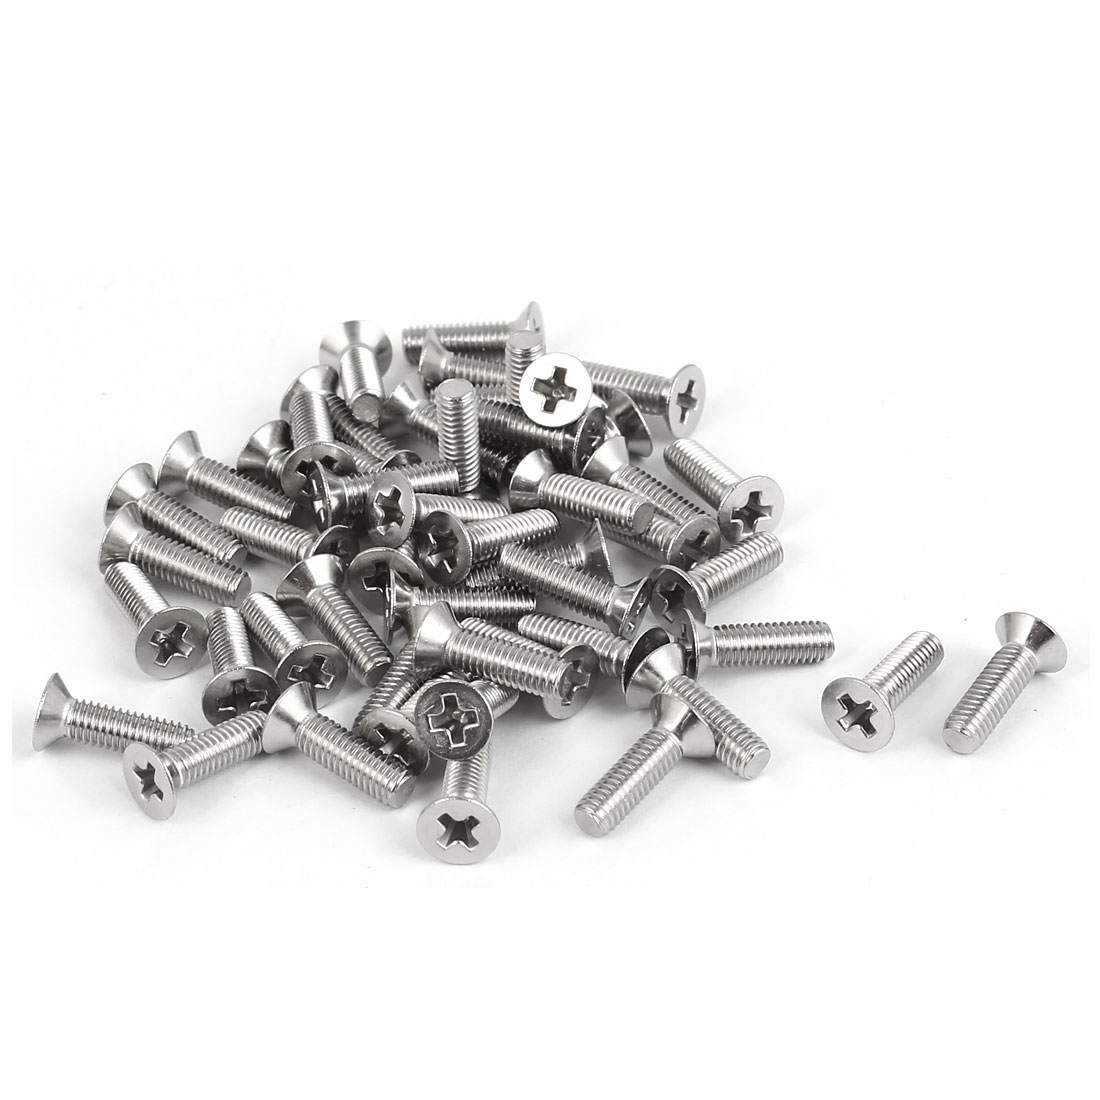 50 Pcs M3x10mm 316 Stainless Steel Flat Head Phillips Machine Screws Silver Tone